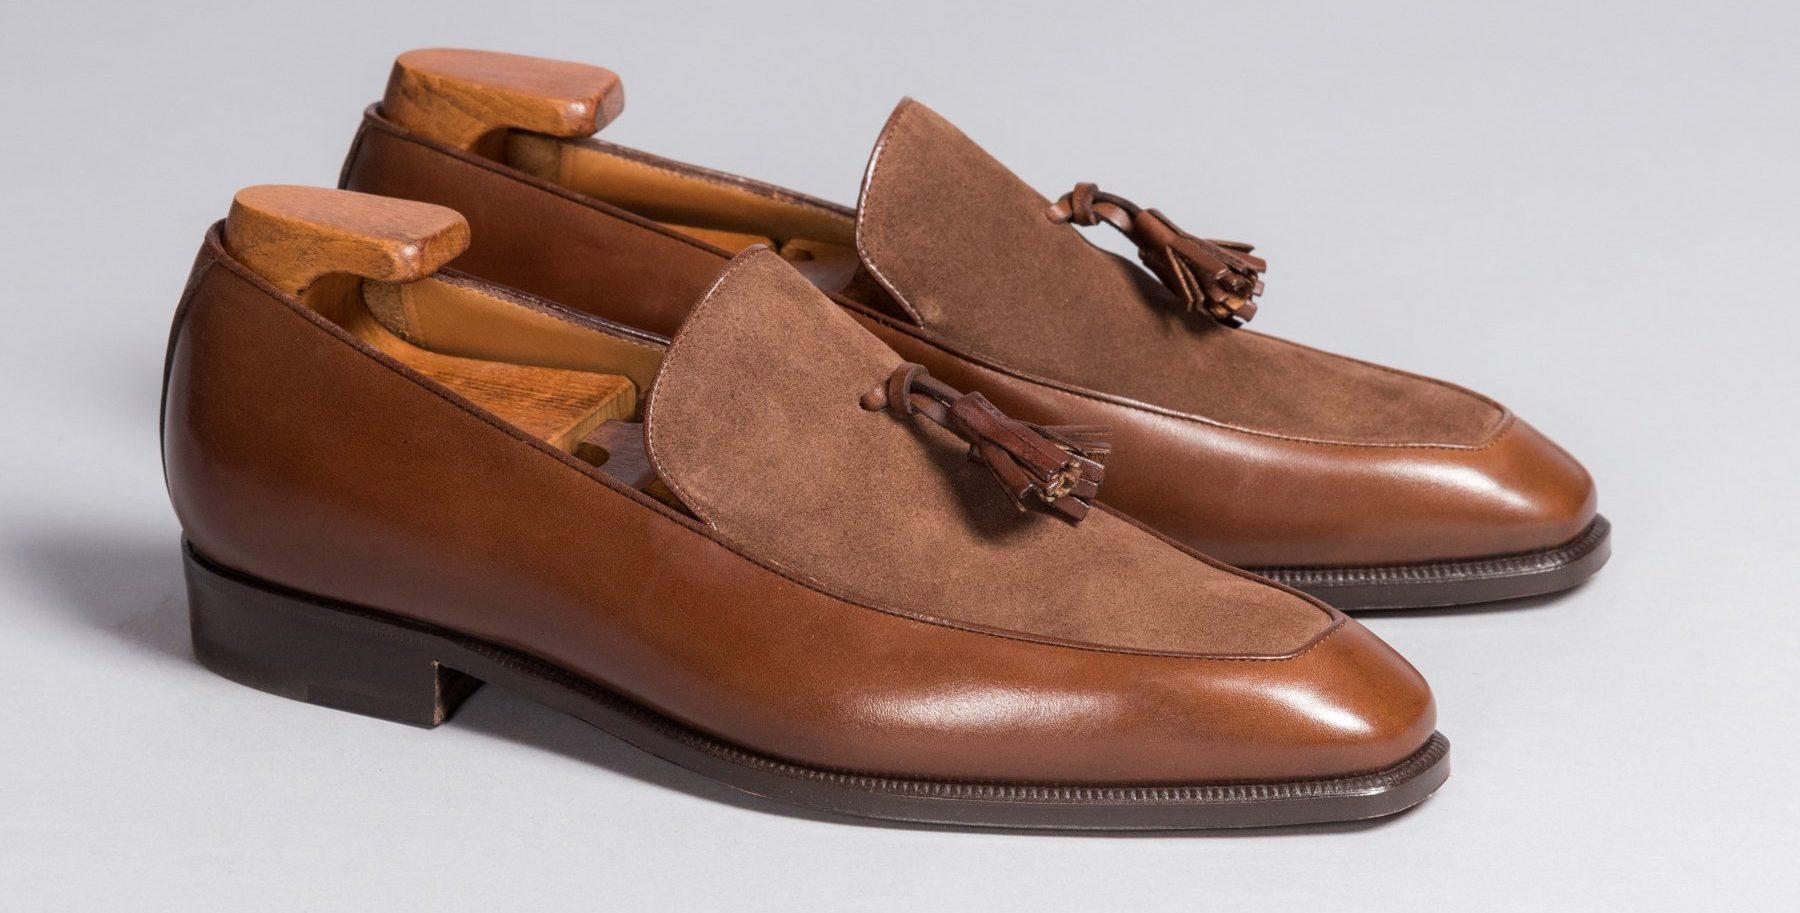 Enzo Bonafe Two Tone Loafer